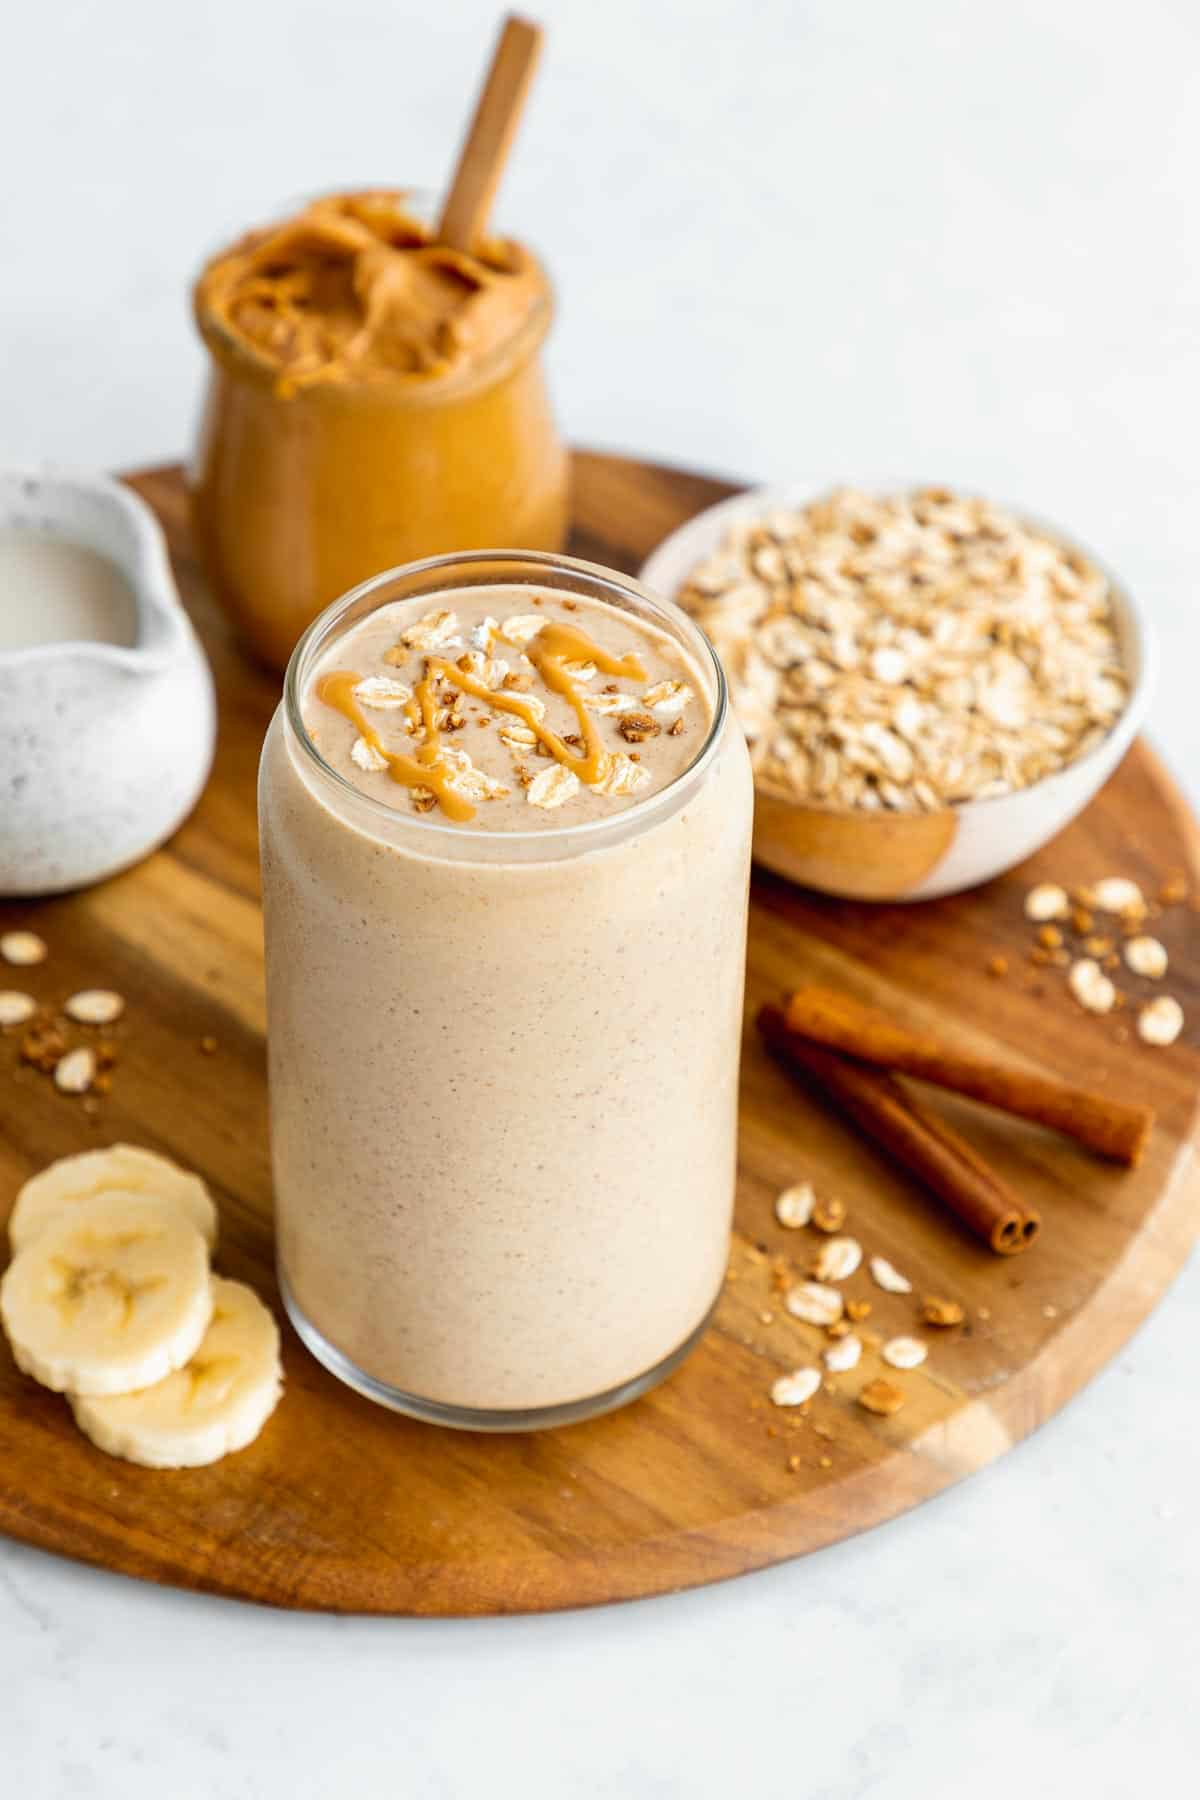 a peanut butter oatmeal smoothie bowl in a glass on top of a round wooden board